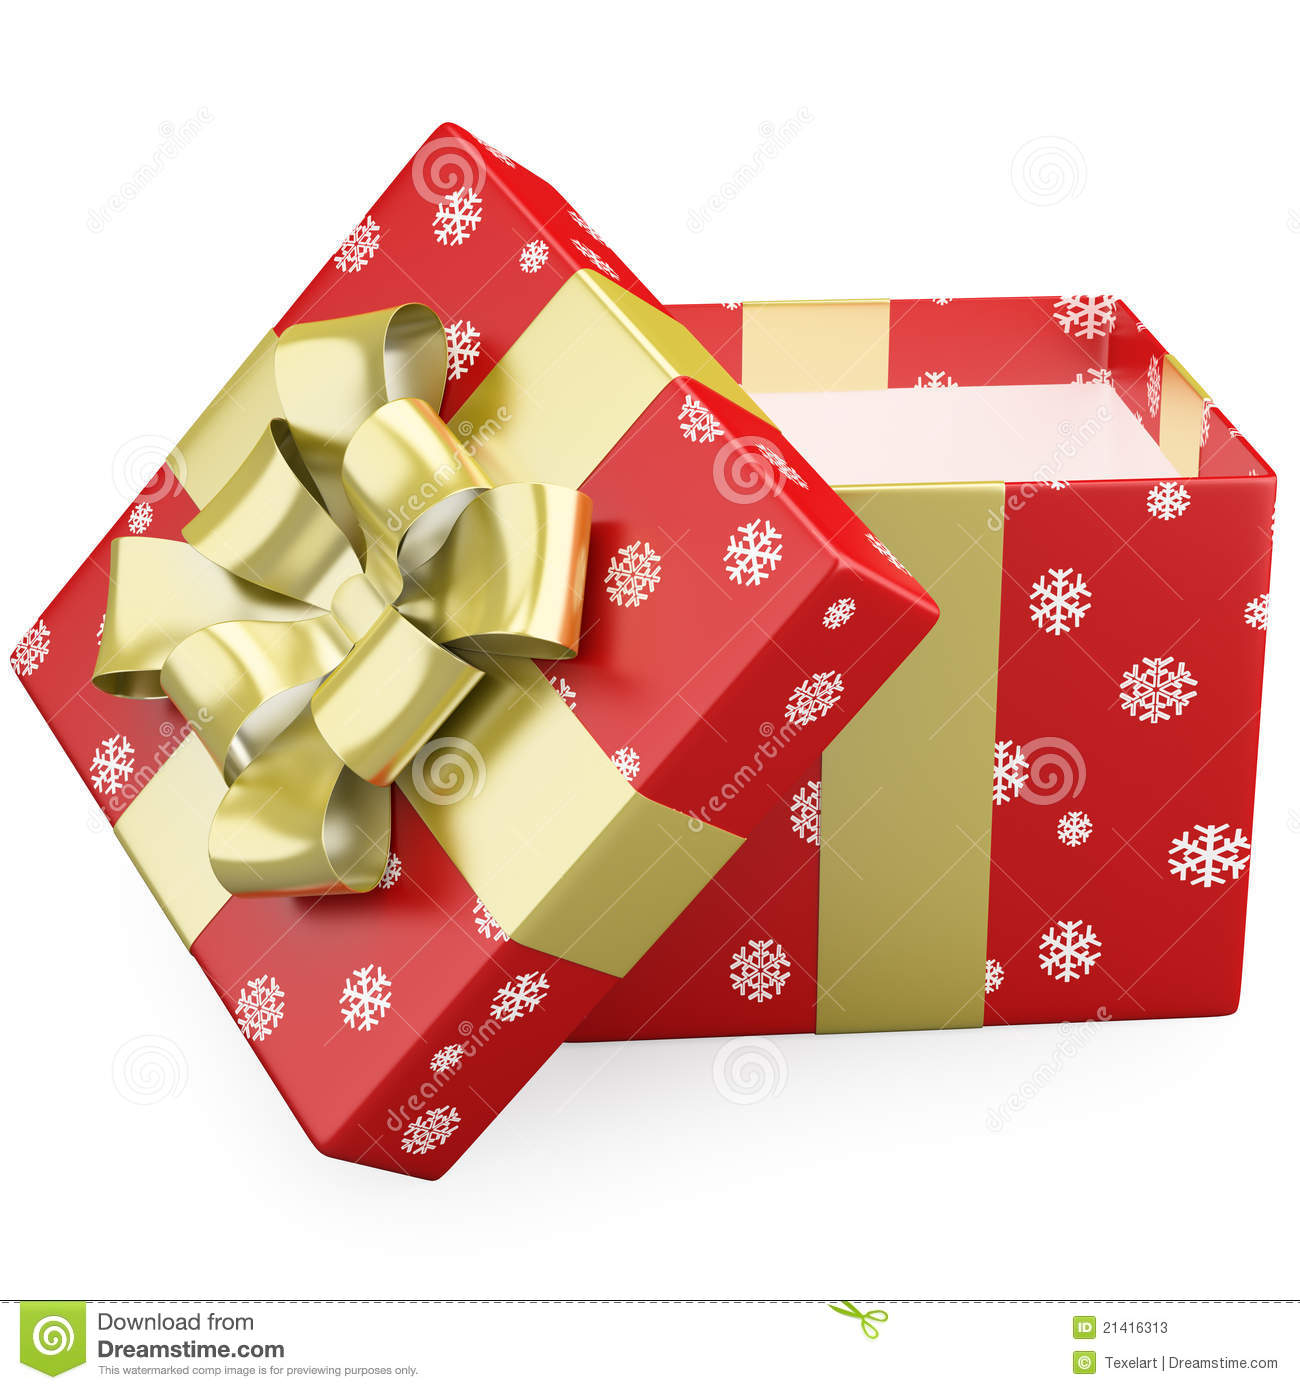 open present clipart. open christmas gifts stock photos present clipart s